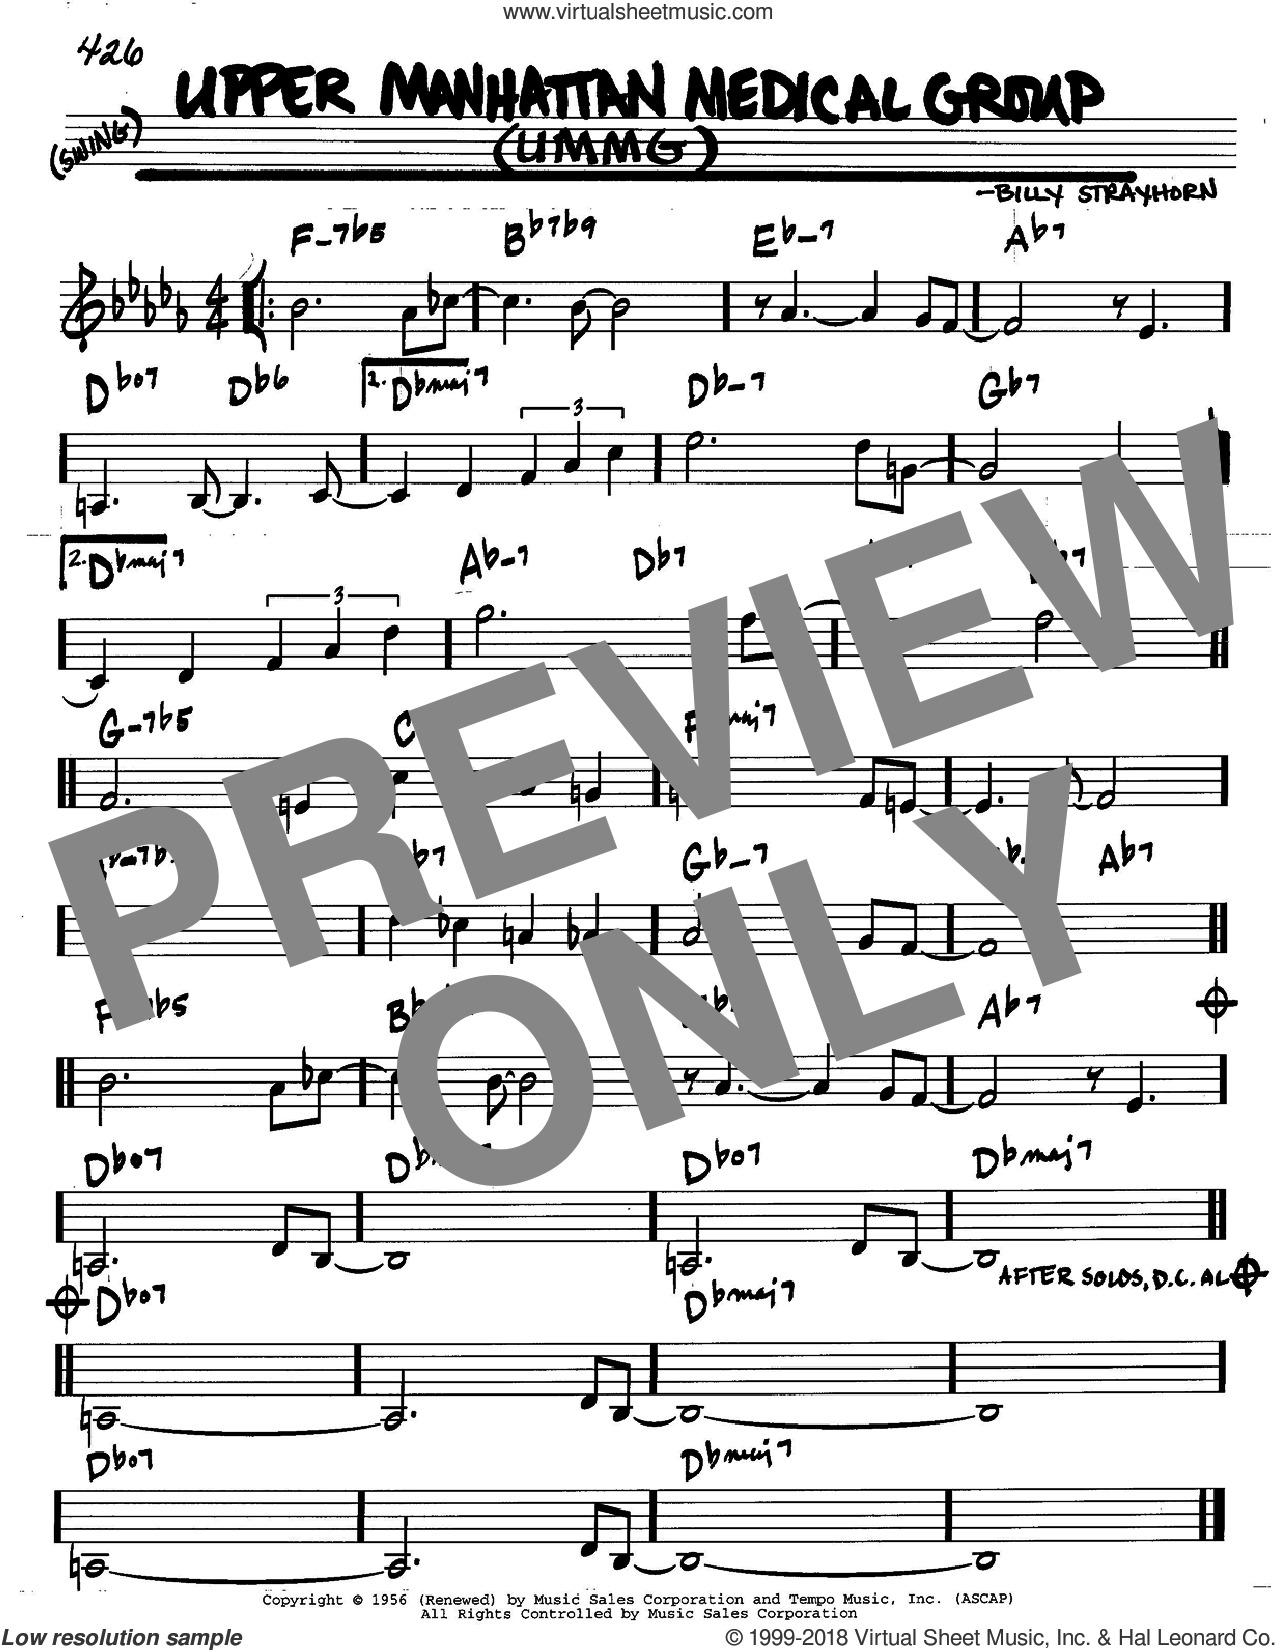 Upper Manhattan Medical Group (UMMG) sheet music for voice and other instruments (C) by Billy Strayhorn. Score Image Preview.